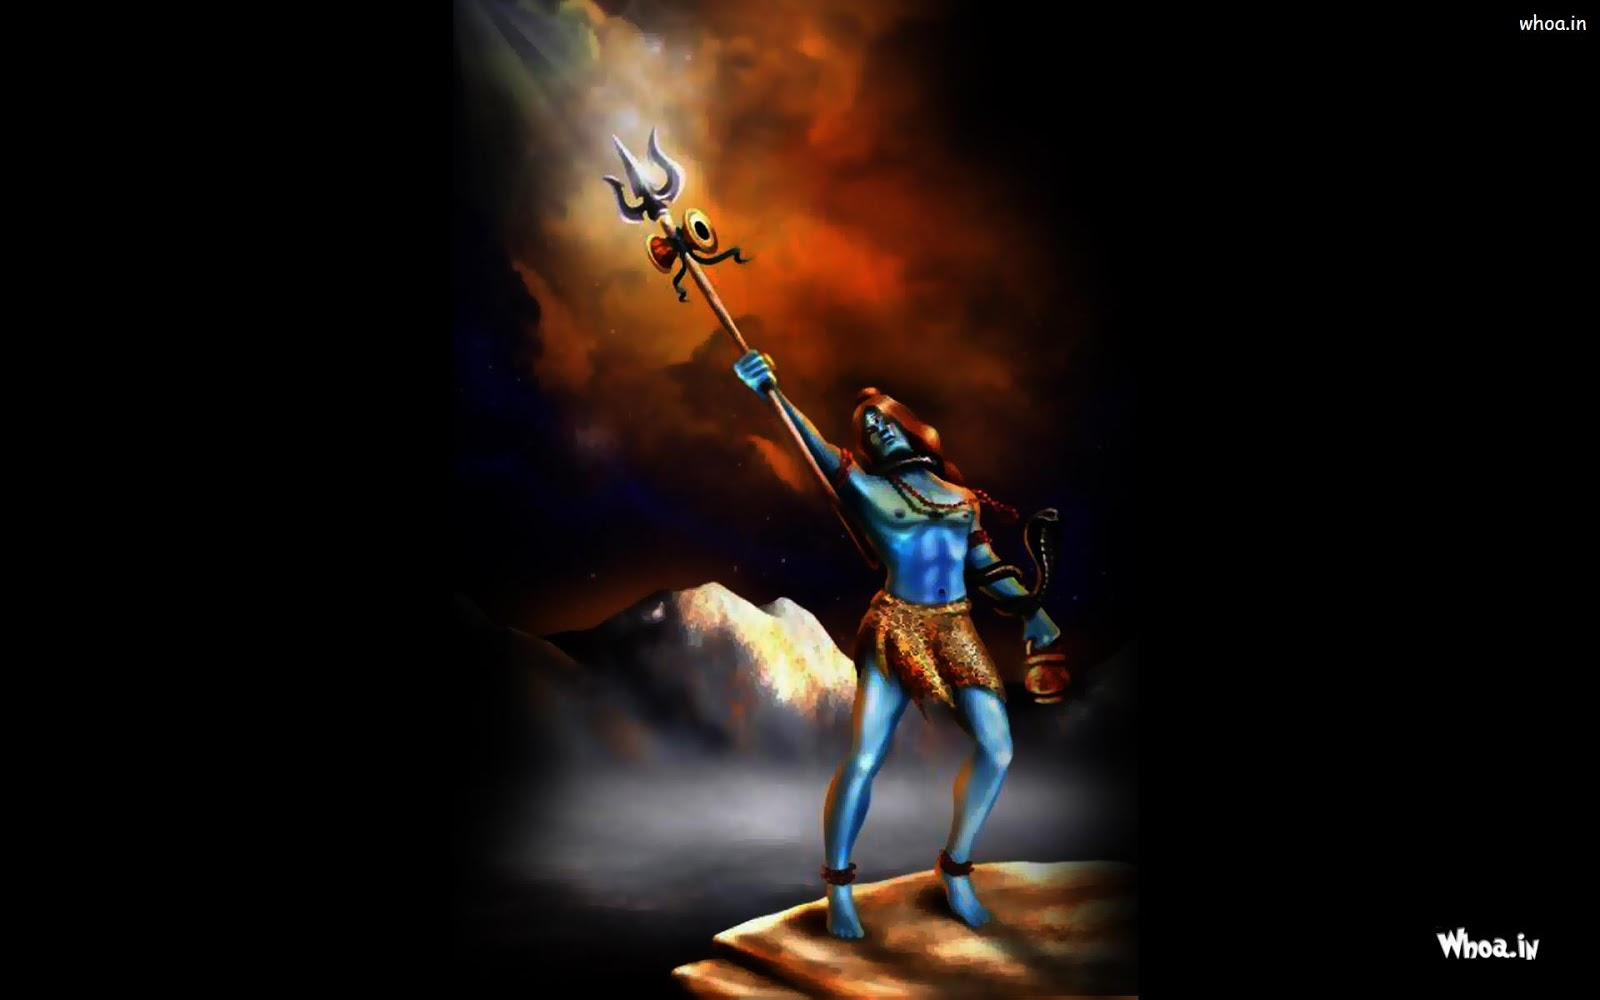 Lord Shiva Wallpapers 3d: [Bholenath Mahadev] Lord Shiva Photos And Pictures For